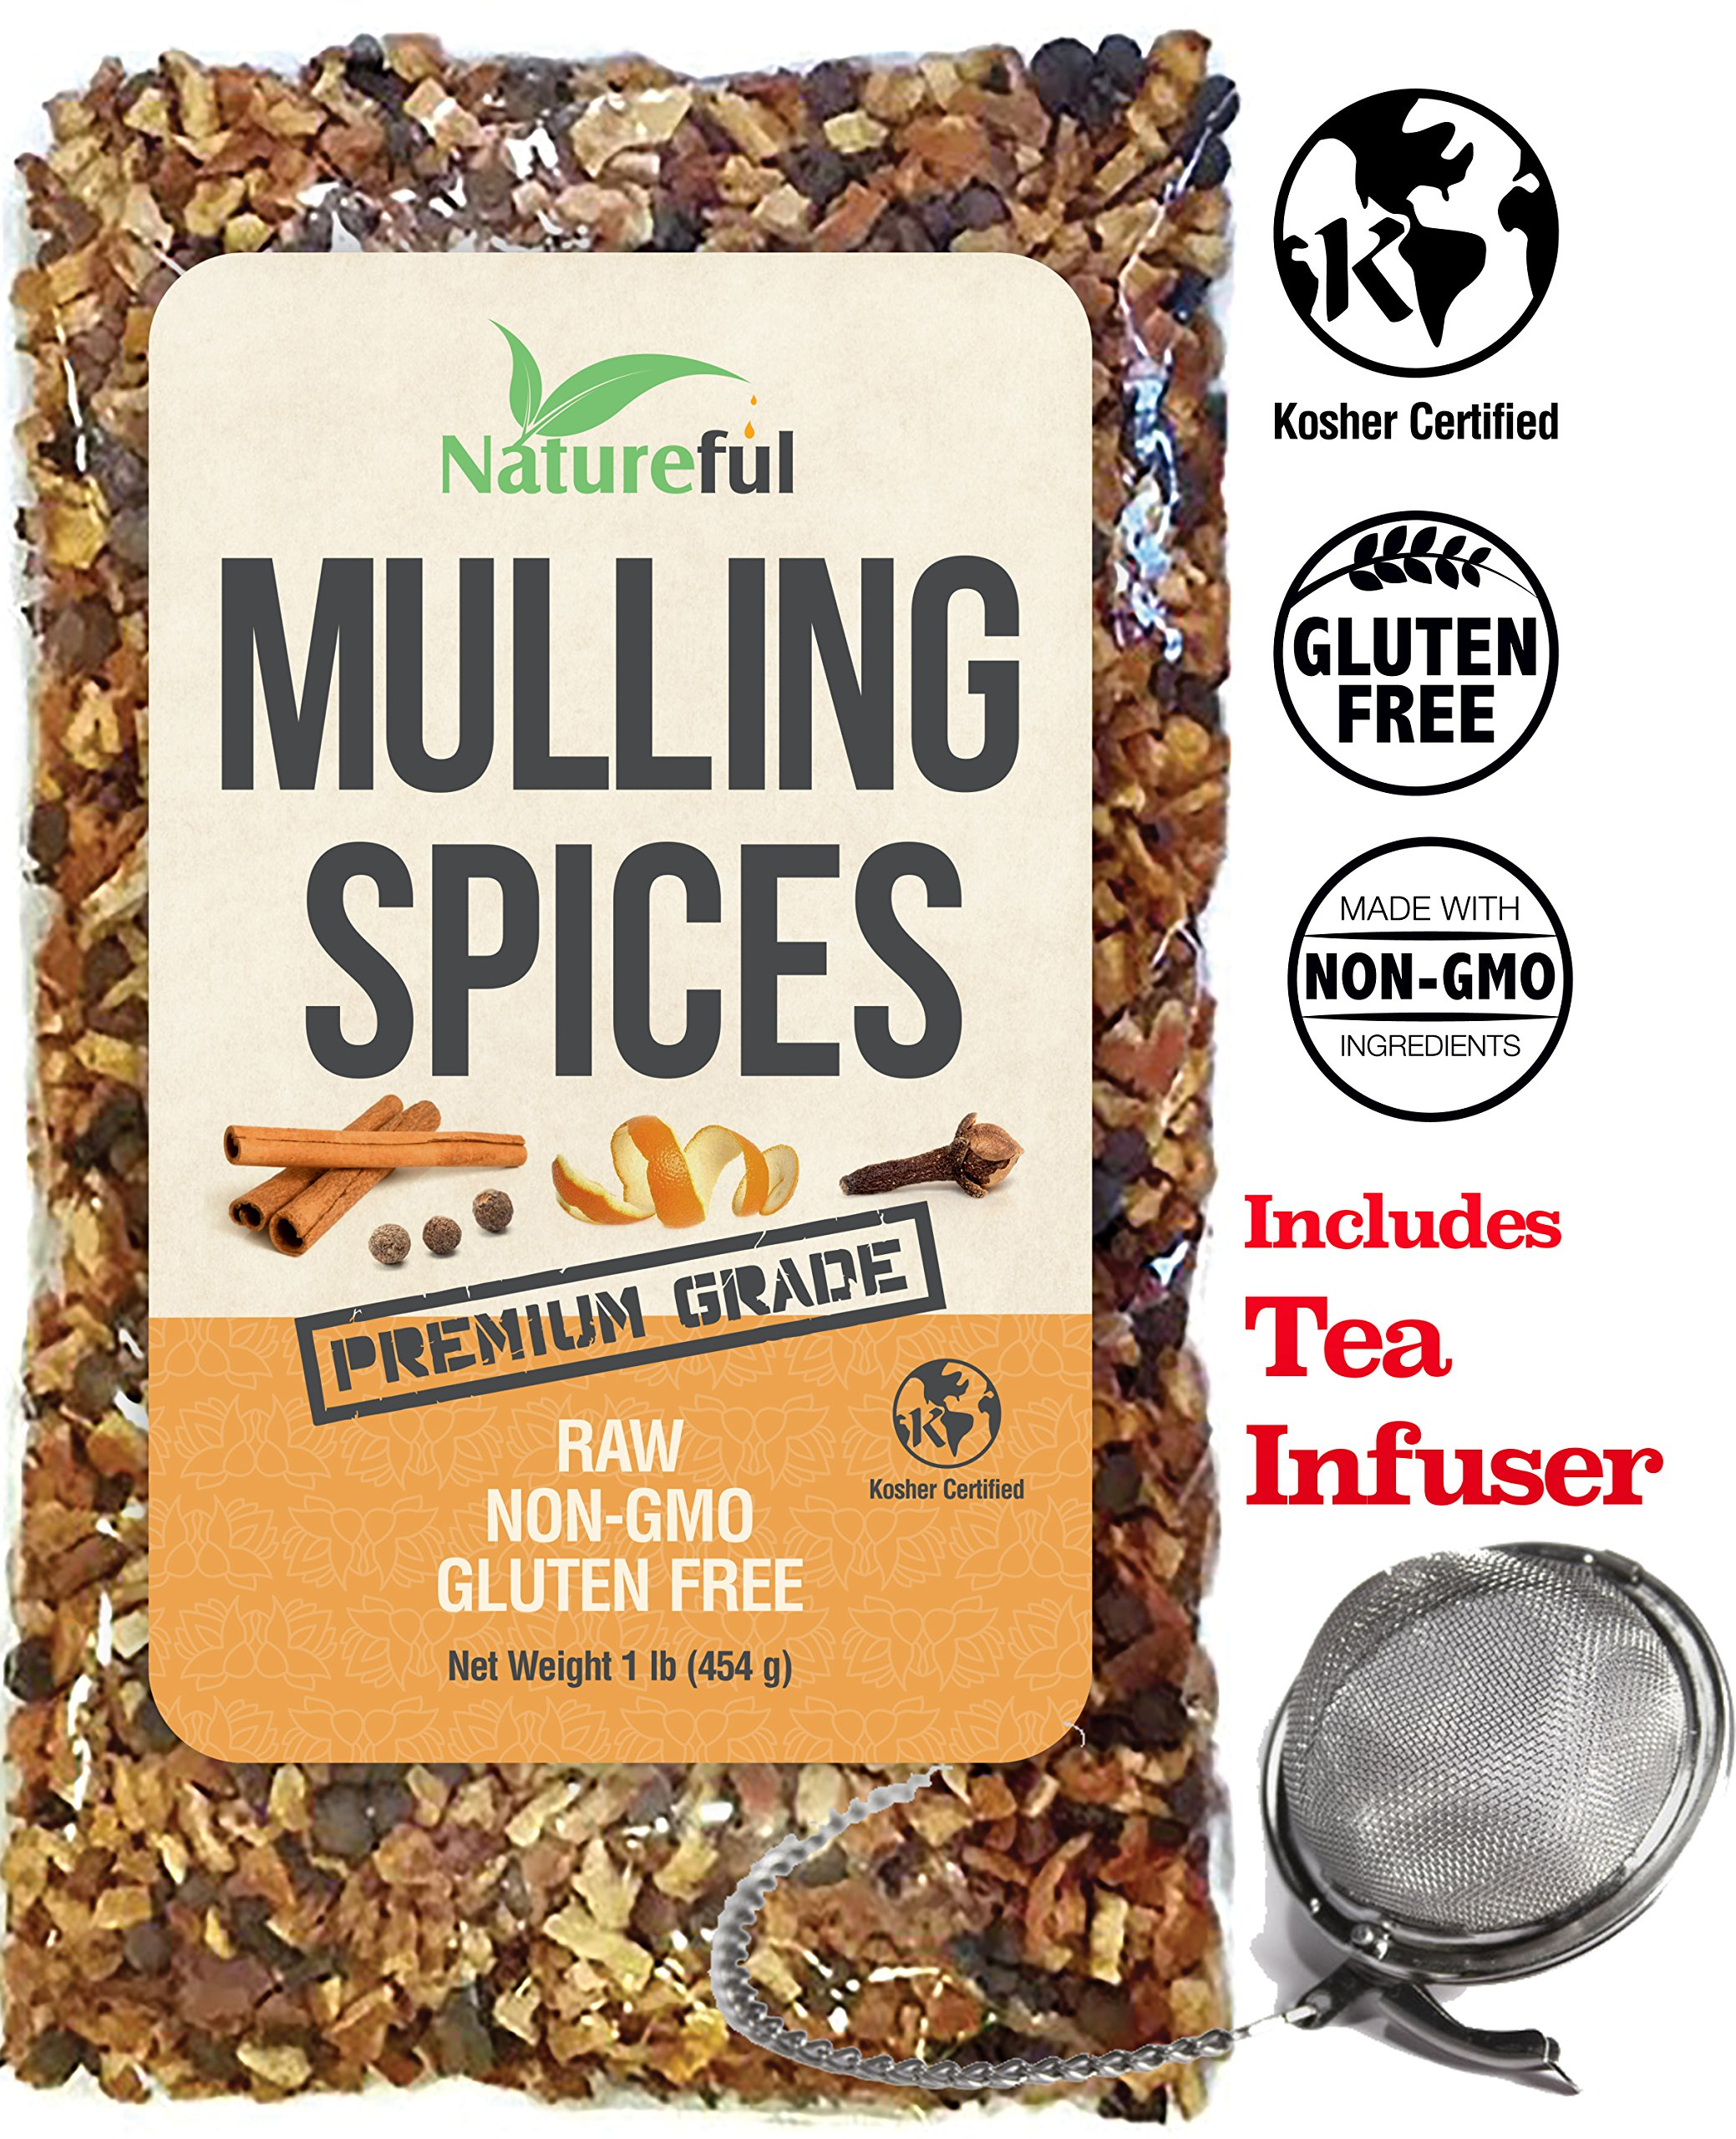 Mulling Spices for Mulled Wine Apple Cider Teas Kit: Holiday Special with Free 2'' Tea Strainer - Infuser! Original 1 Pound Bulk Bag - Mix of Orange Peel, All Spice, Cloves, Cinnamon Sticks Blend.